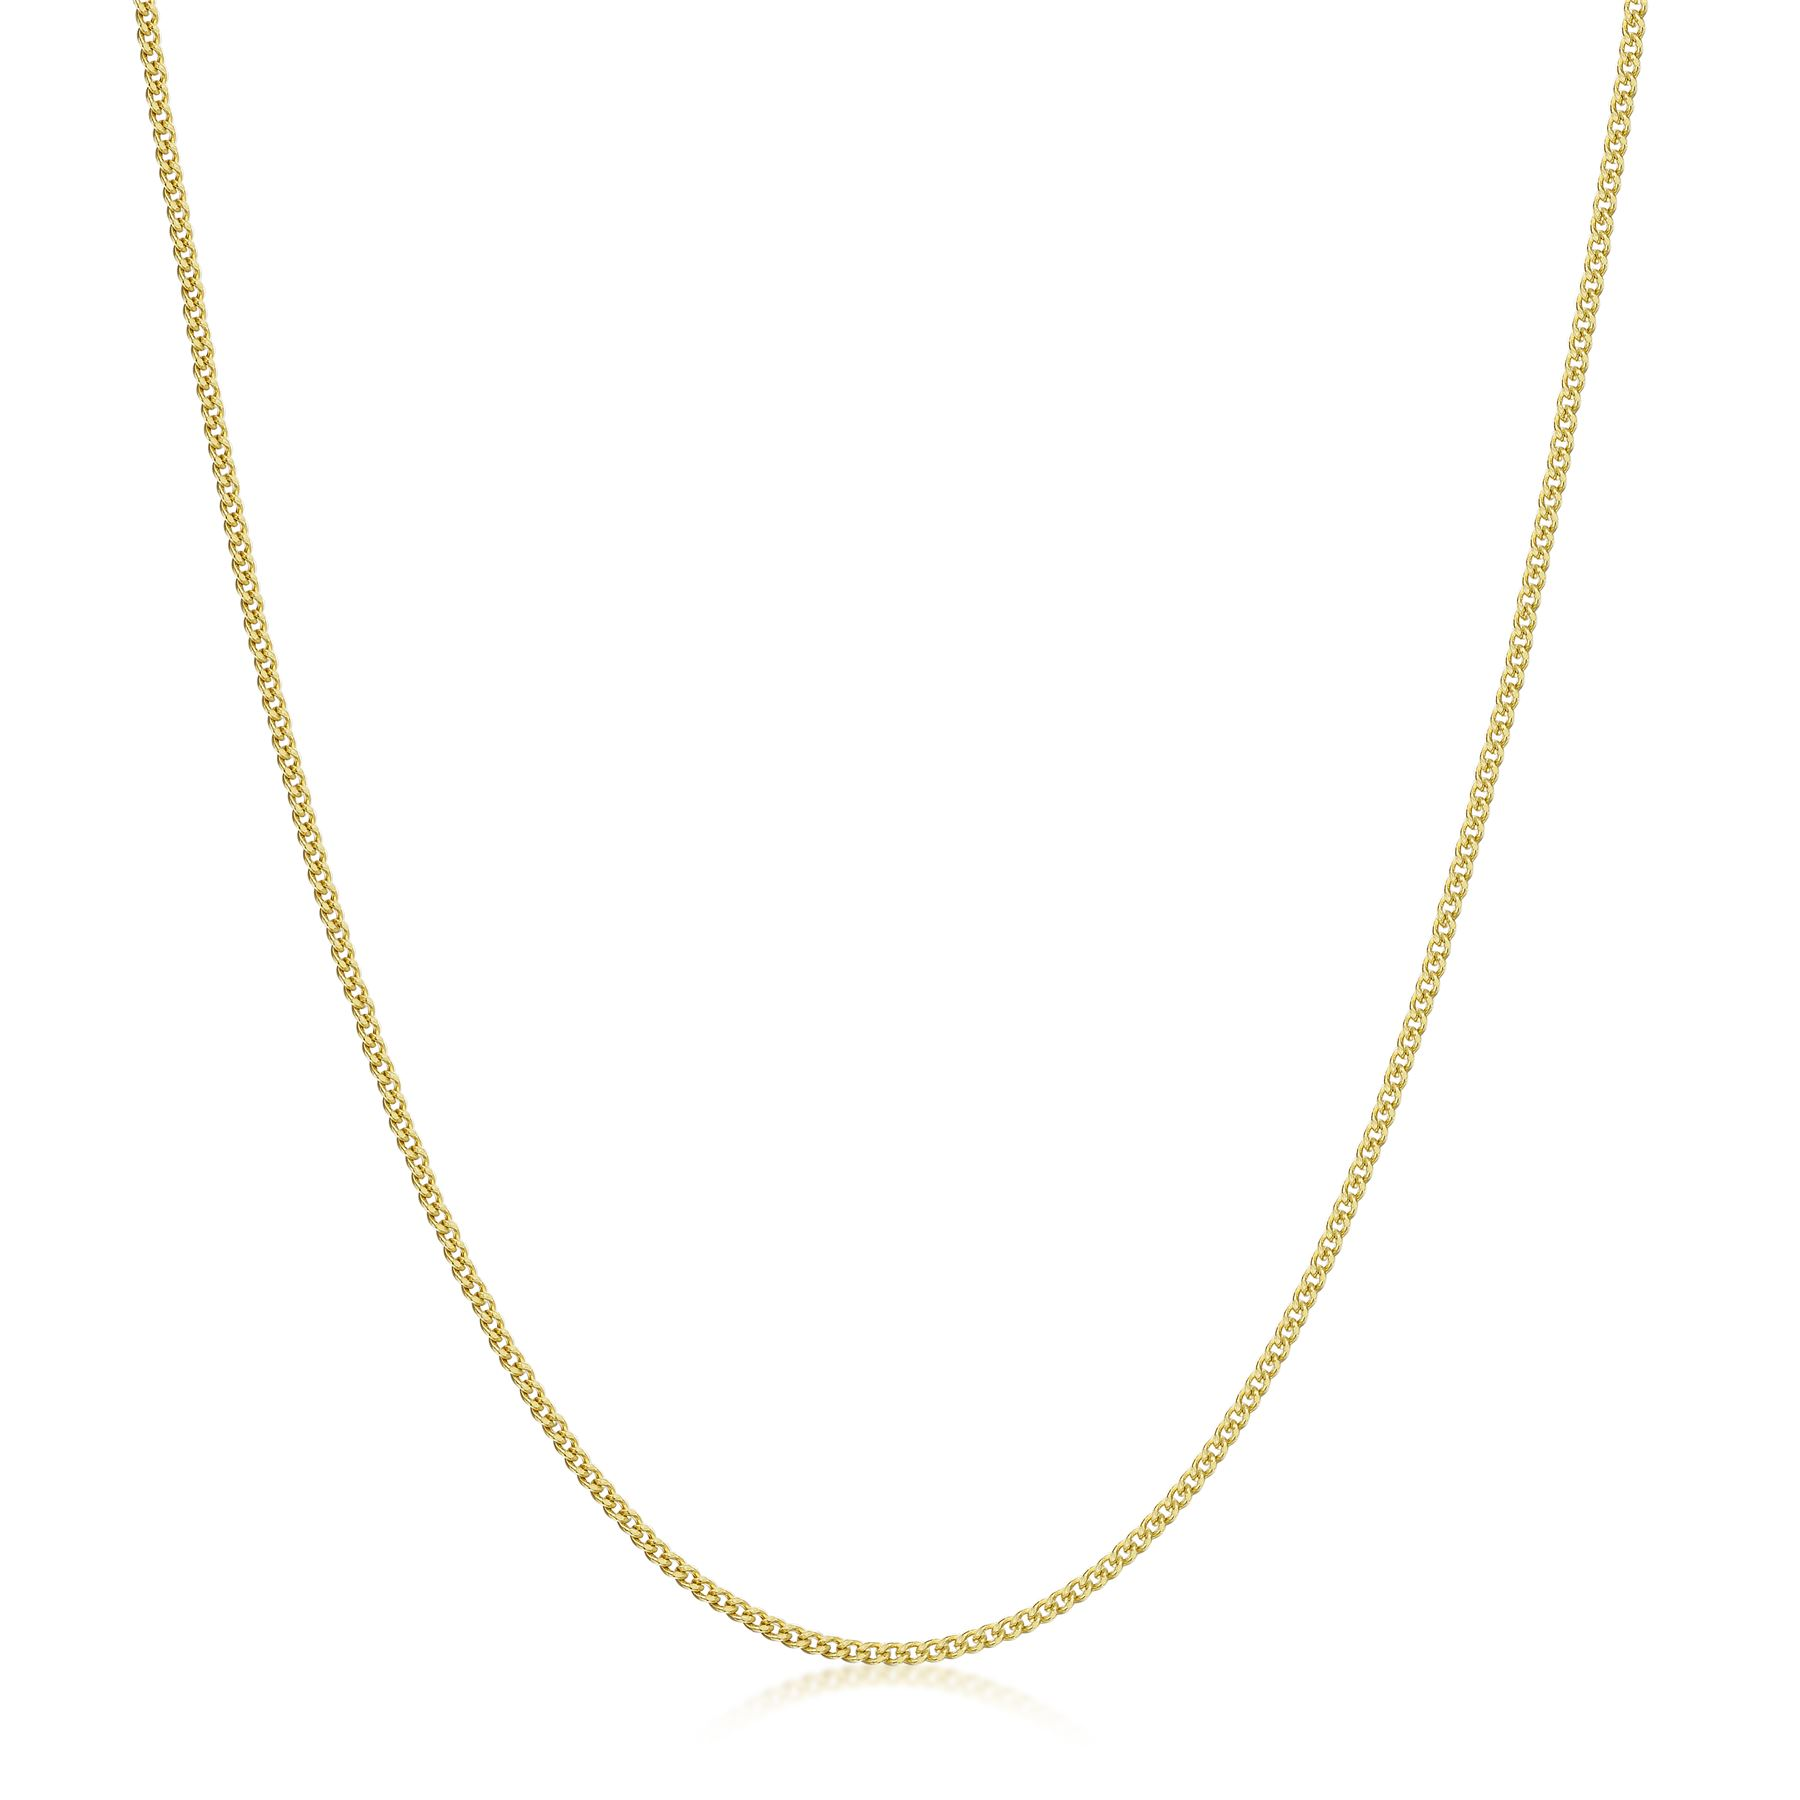 Amberta-Genuine-Real-Yellow-Gold-9K-Solid-Strong-Adjustable-Necklace-Chain-Italy thumbnail 7